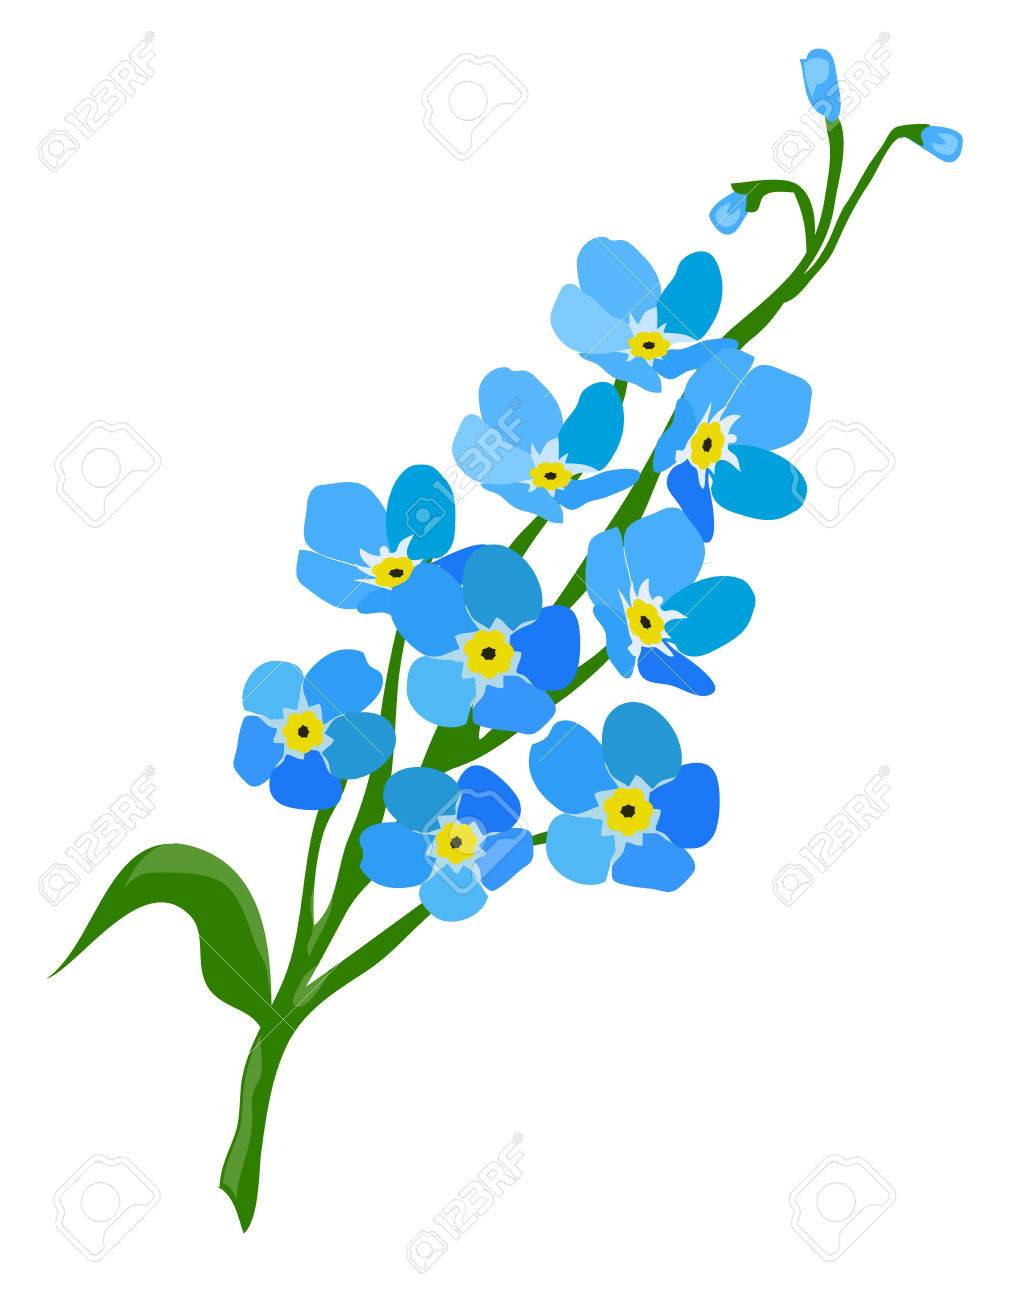 Vector illustration of a forget me not flower.